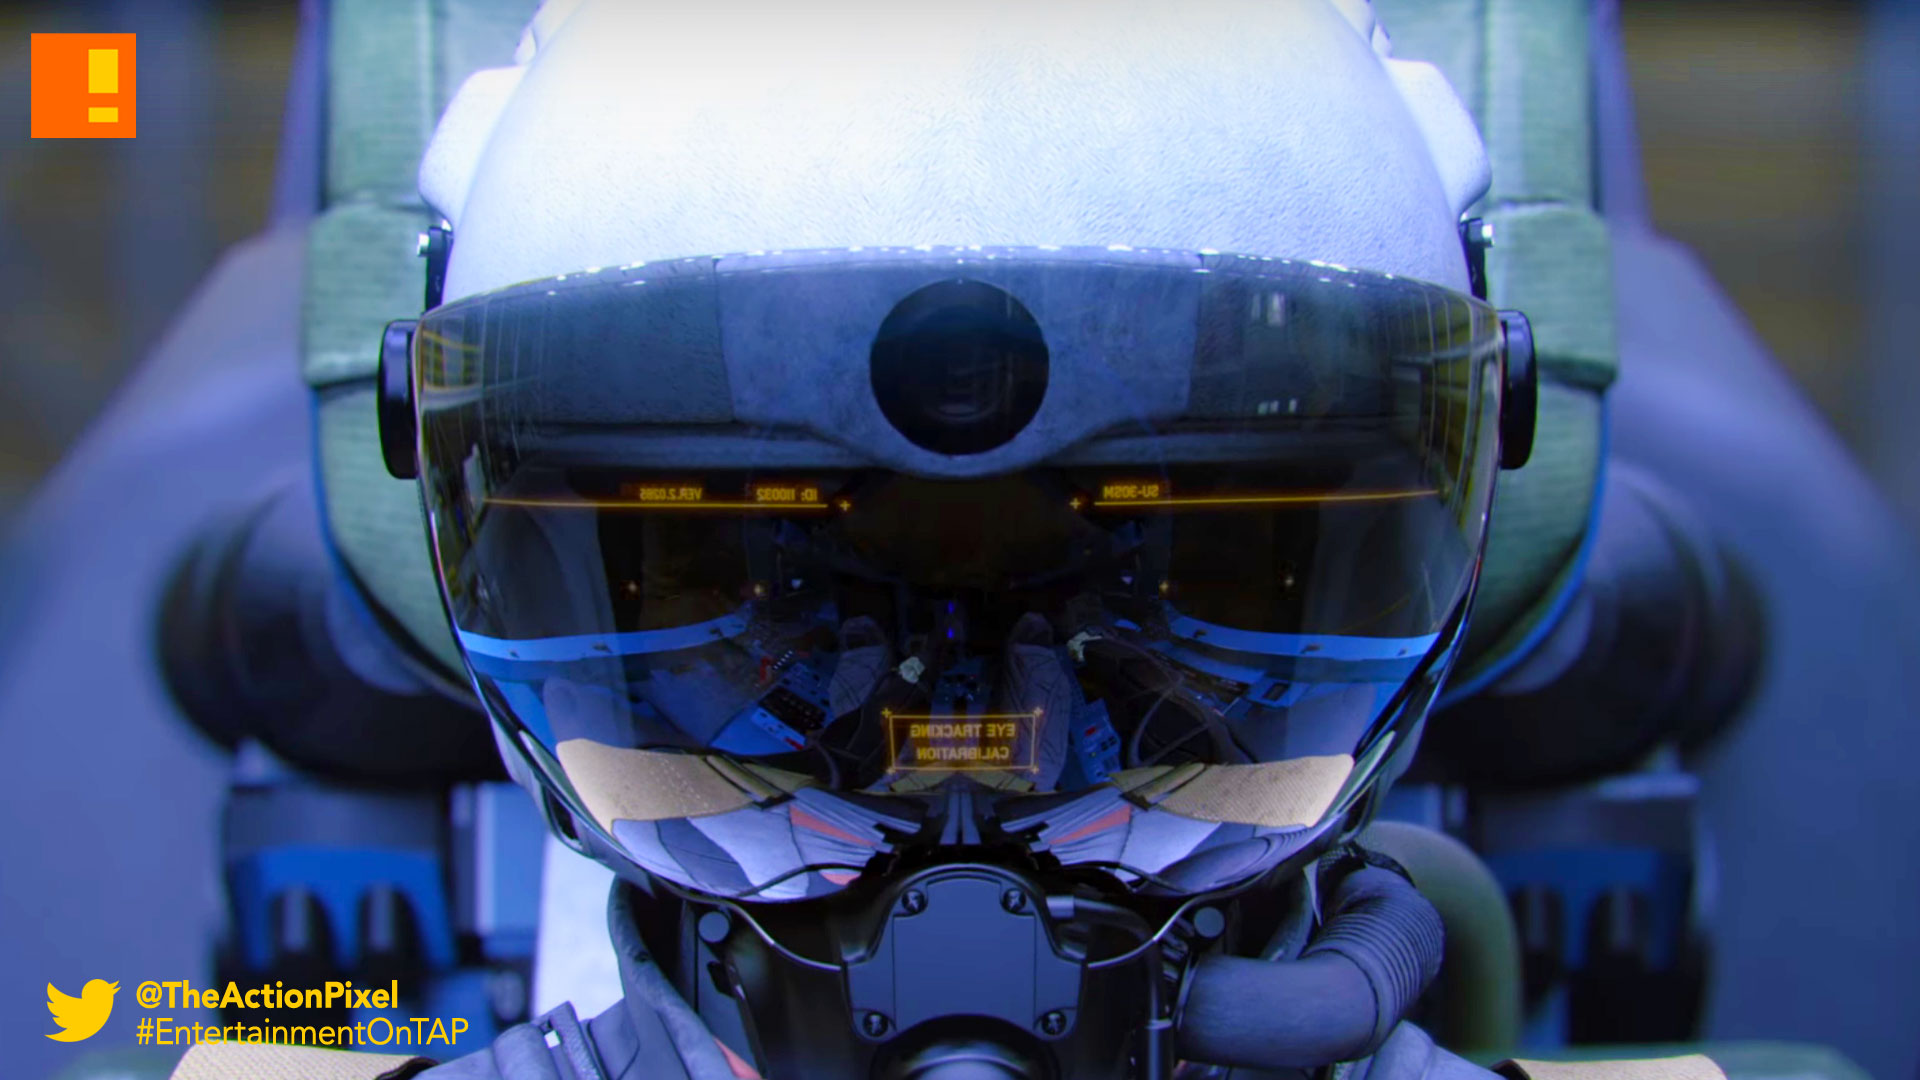 ace combat 7, bandai namco, entertainment on tap, the action pixel, trailer ,